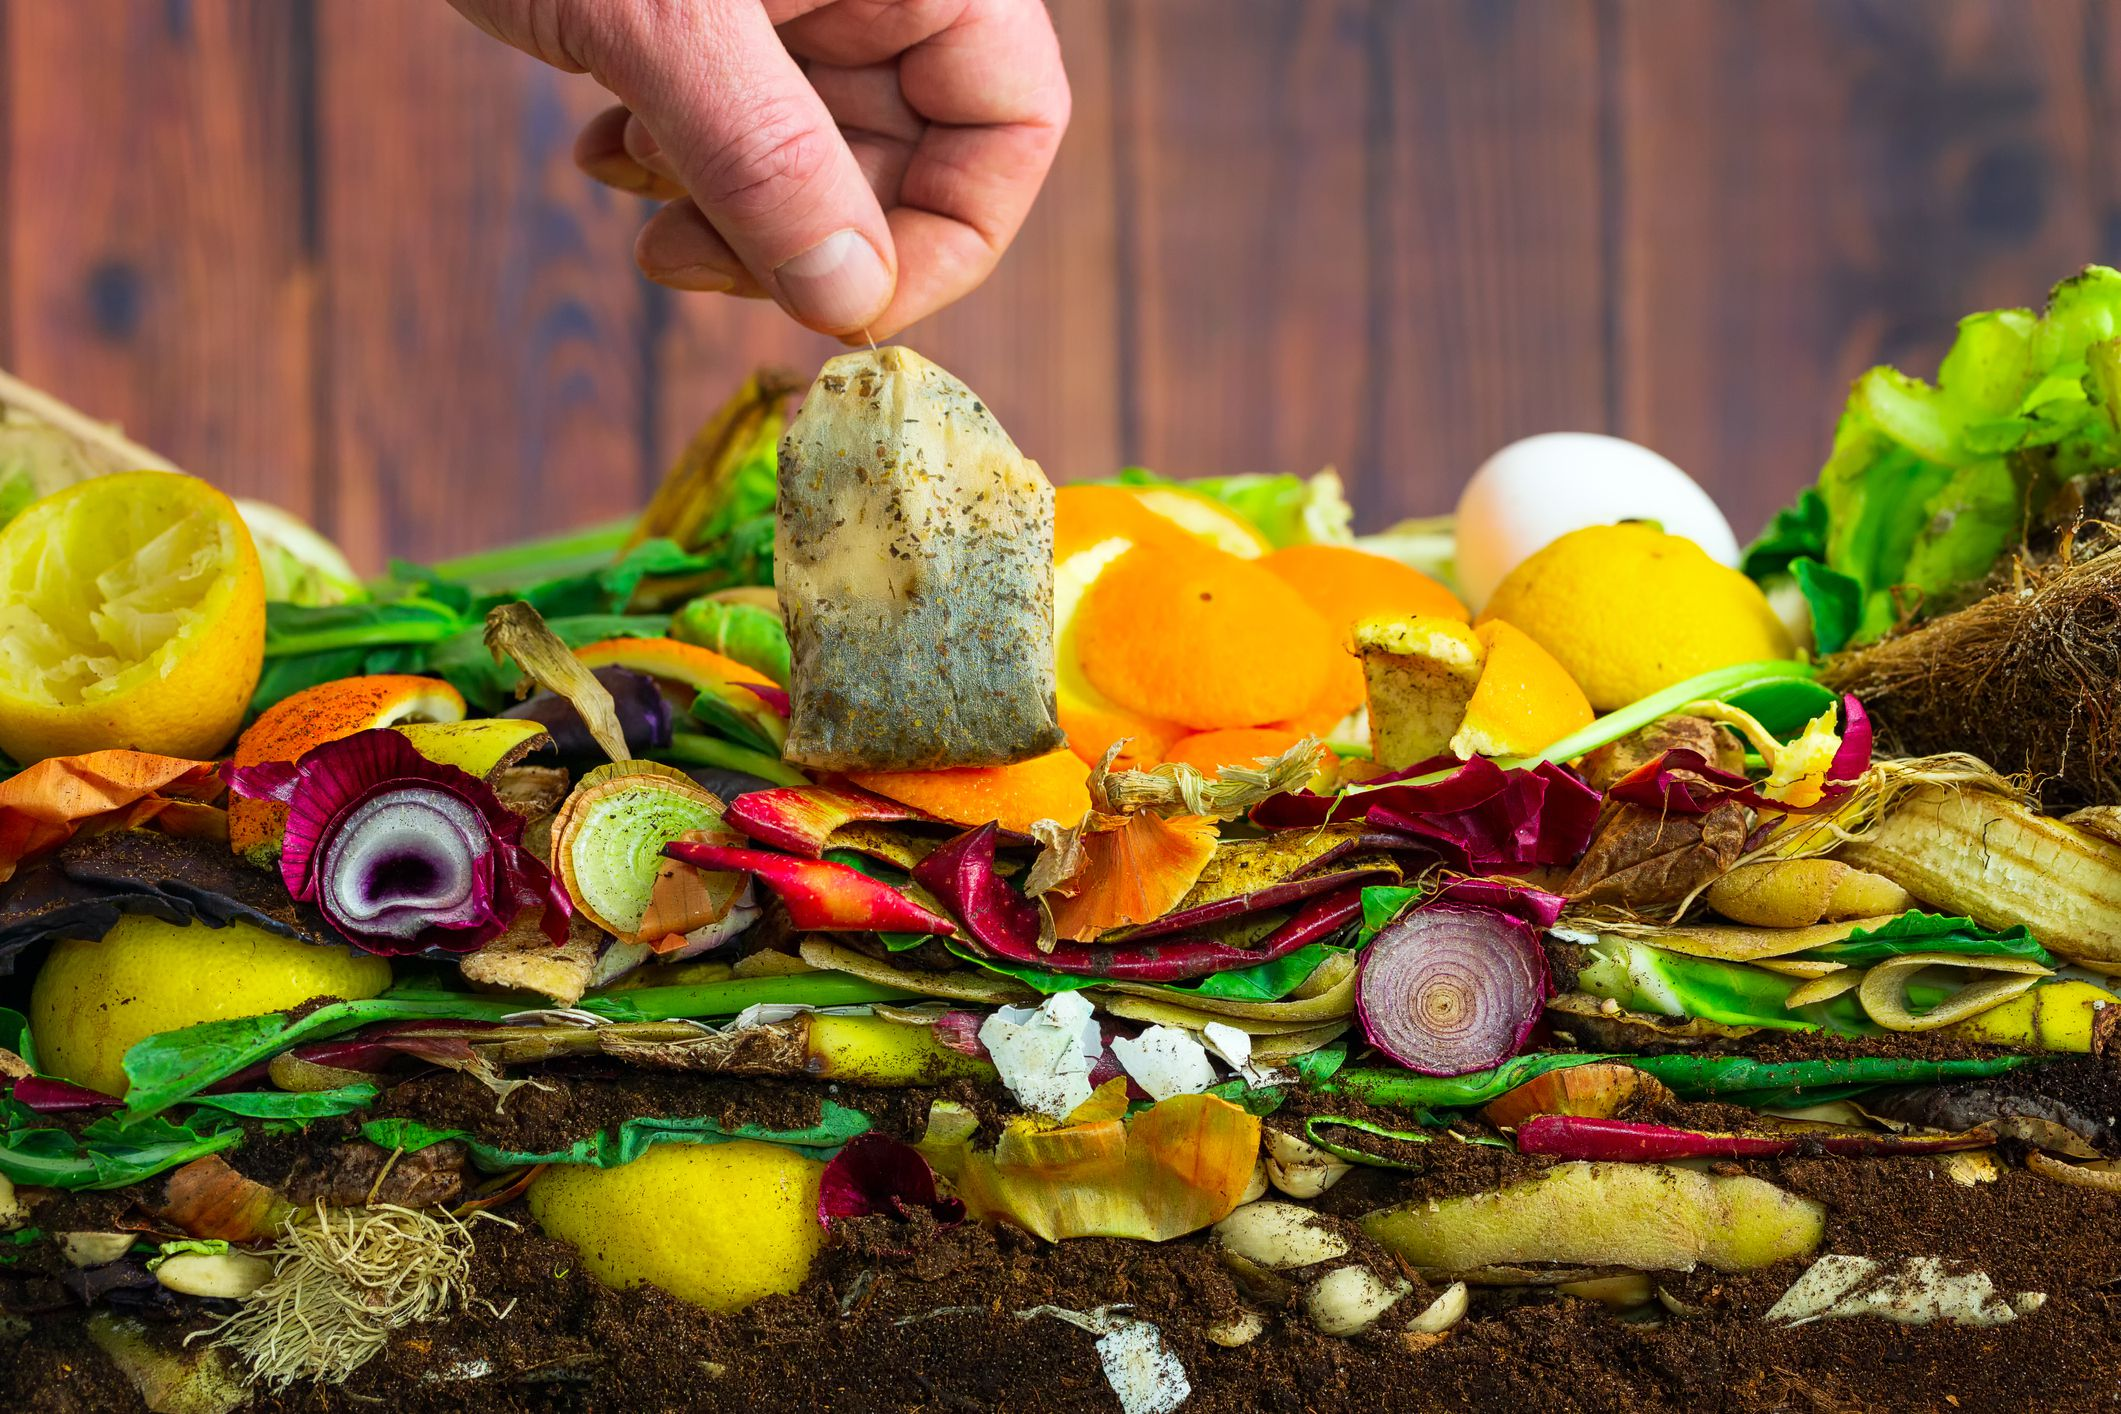 How to Compost at Home: Basic Steps and Types of Composting